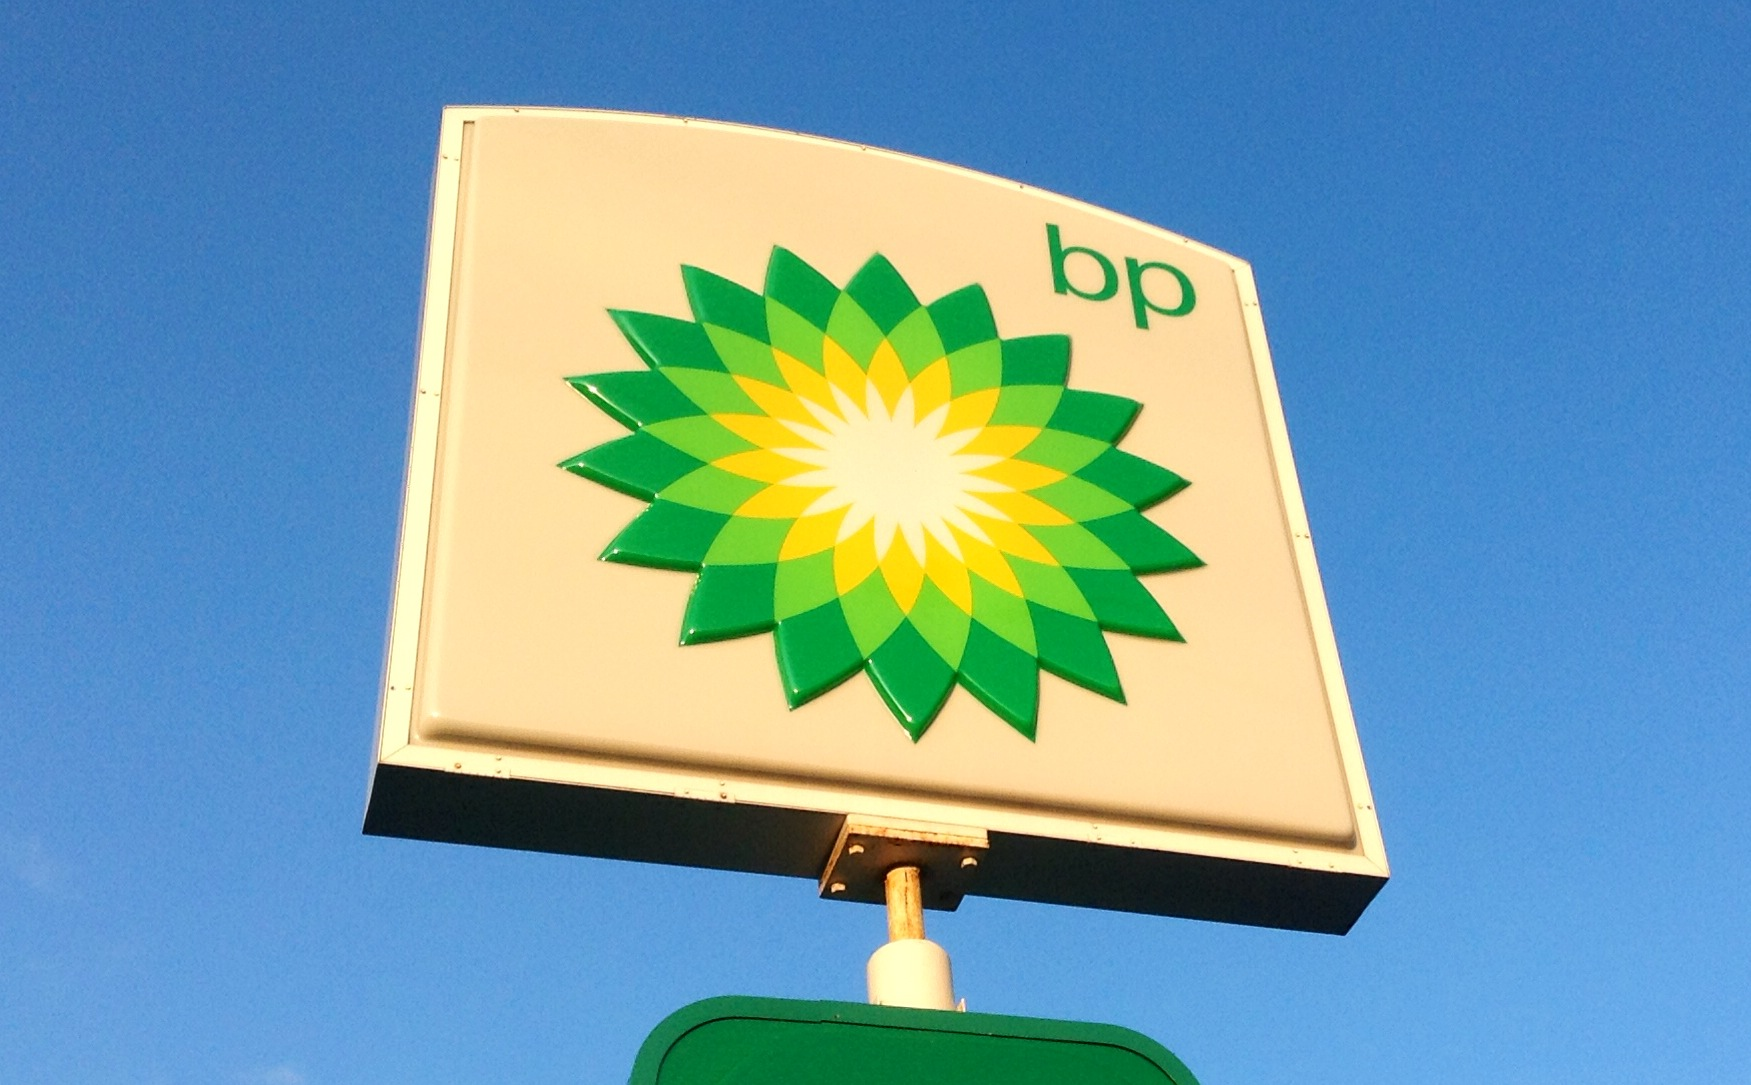 BP and Big Oil Drive Society Over the 'Climate Cliff'